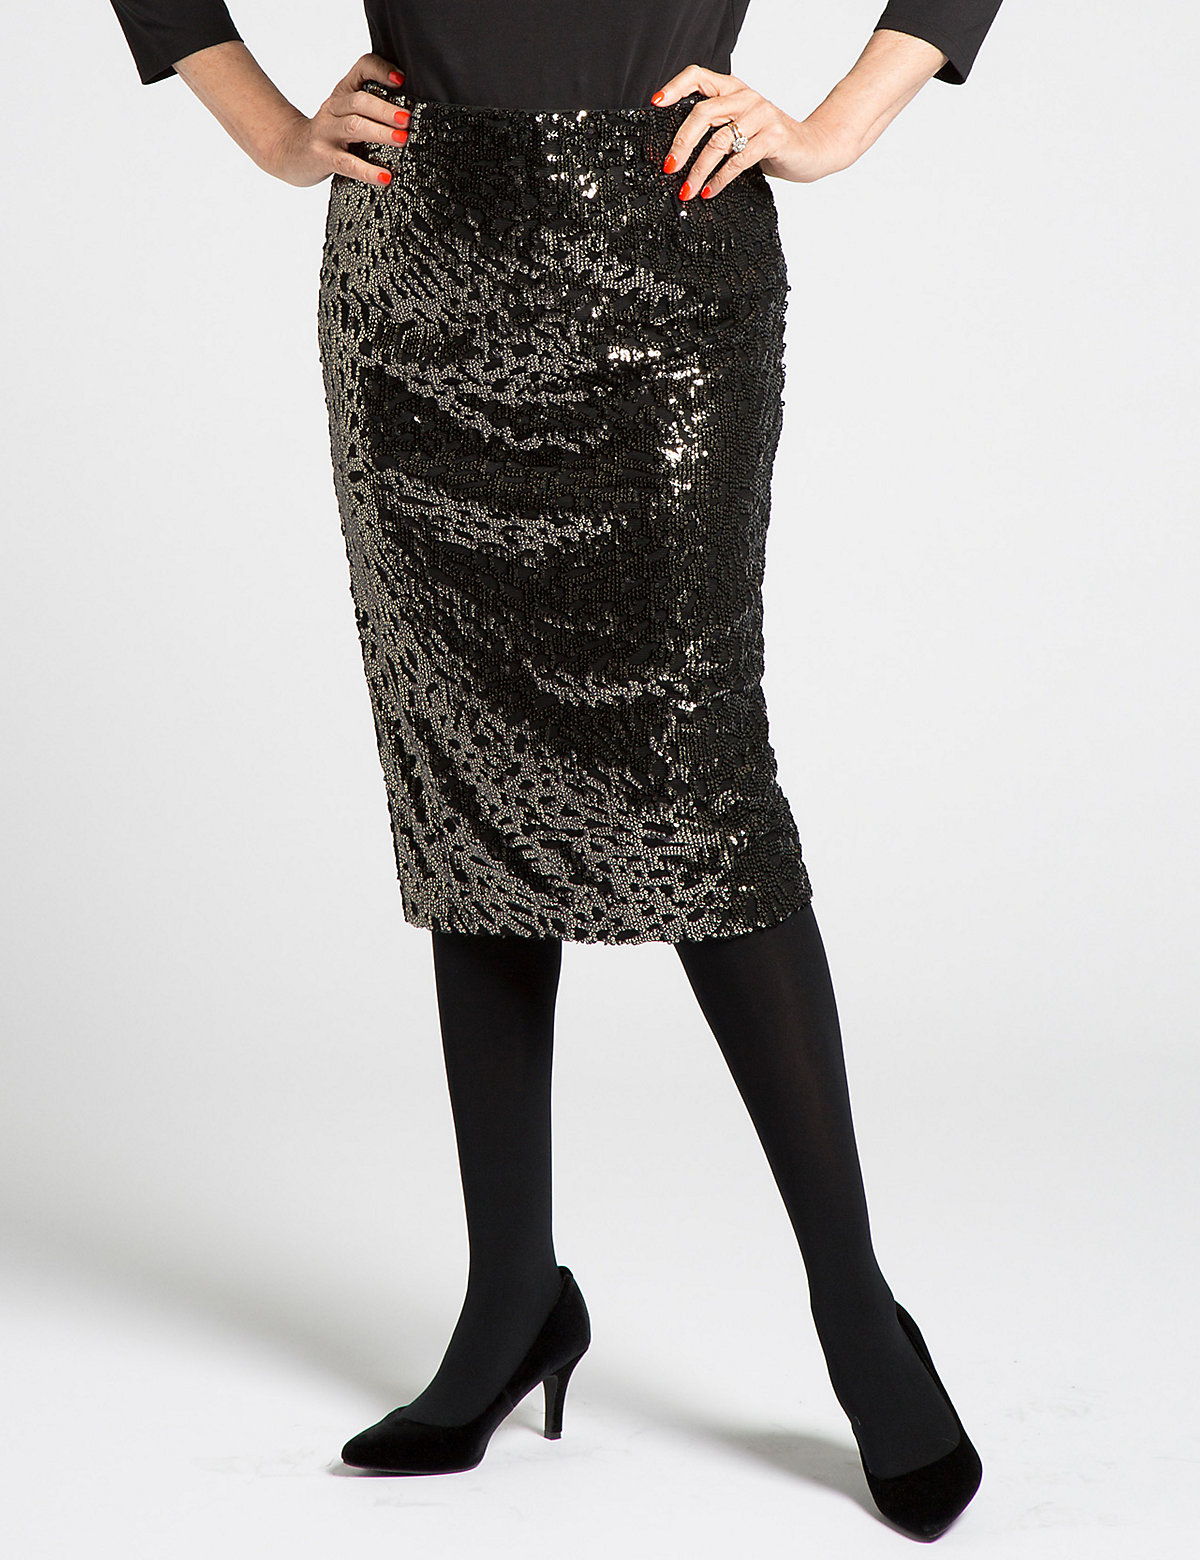 Designed by Twiggy Sequin Pencil Skirt